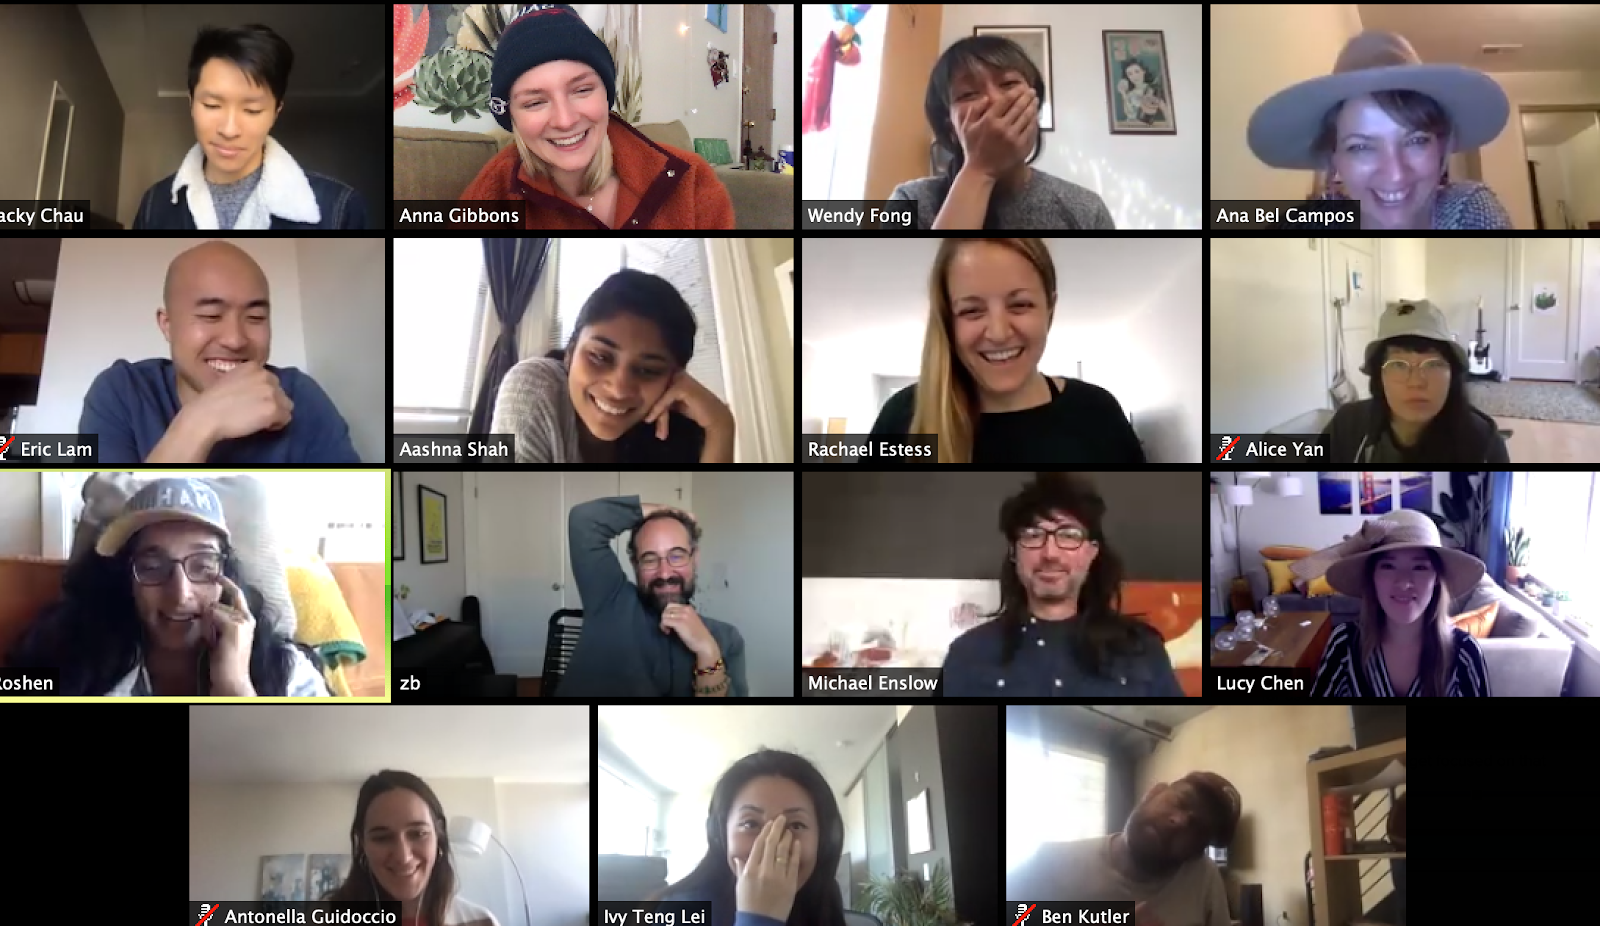 The Exygy Team at our first 100% remote (hat themed) OKR party in March.